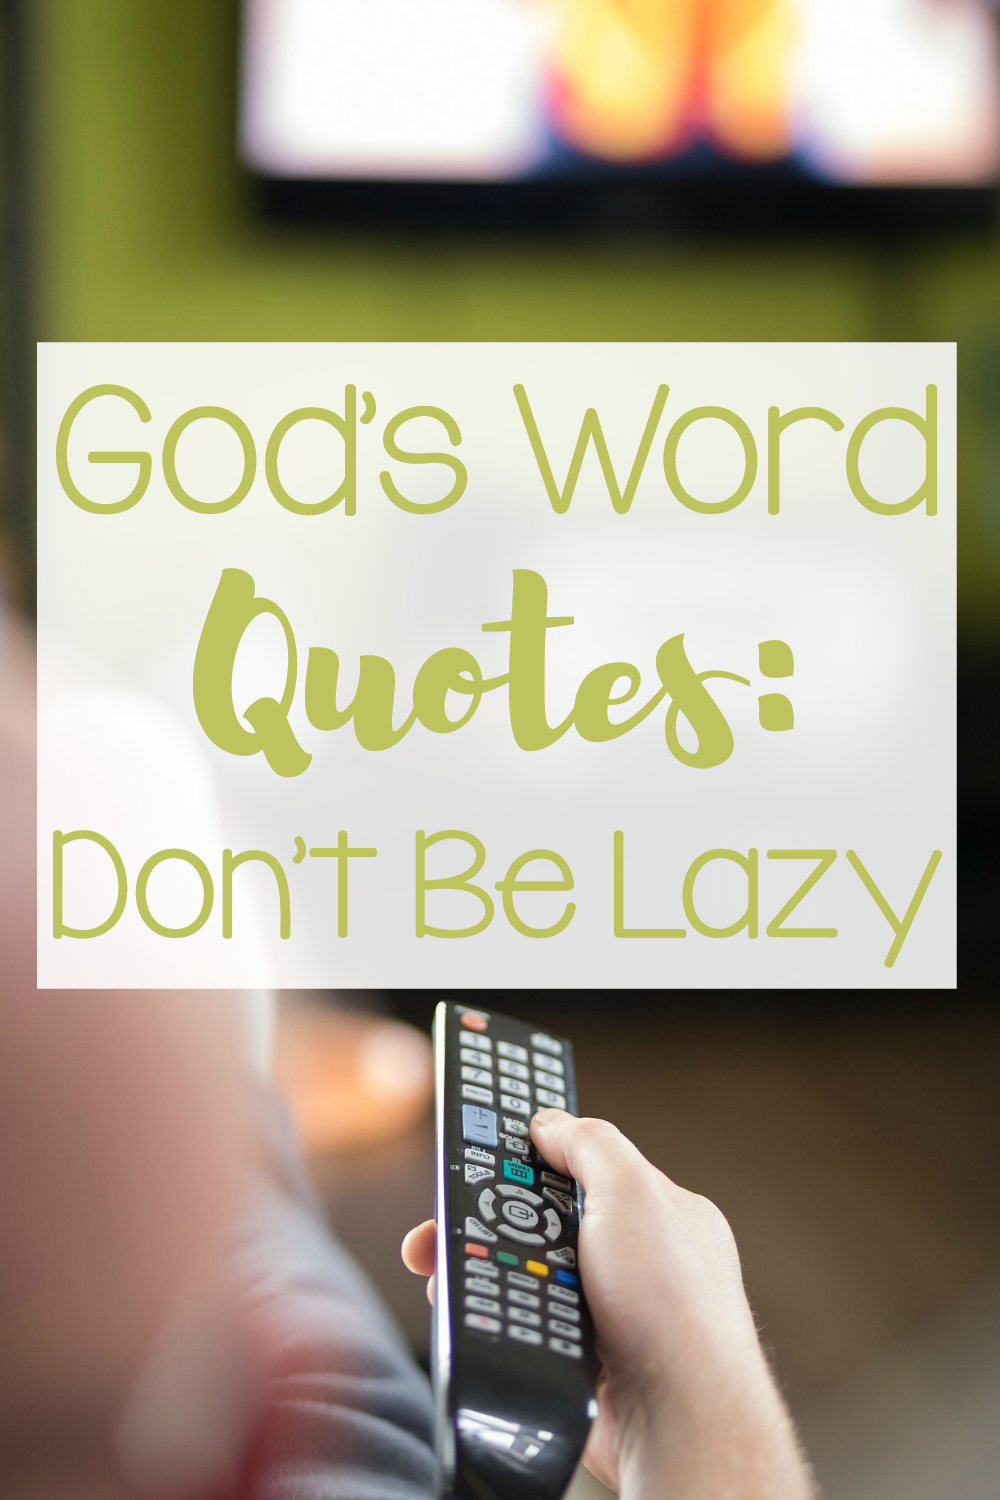 God's Word Quotes: Put in the good work and don't be lazy.